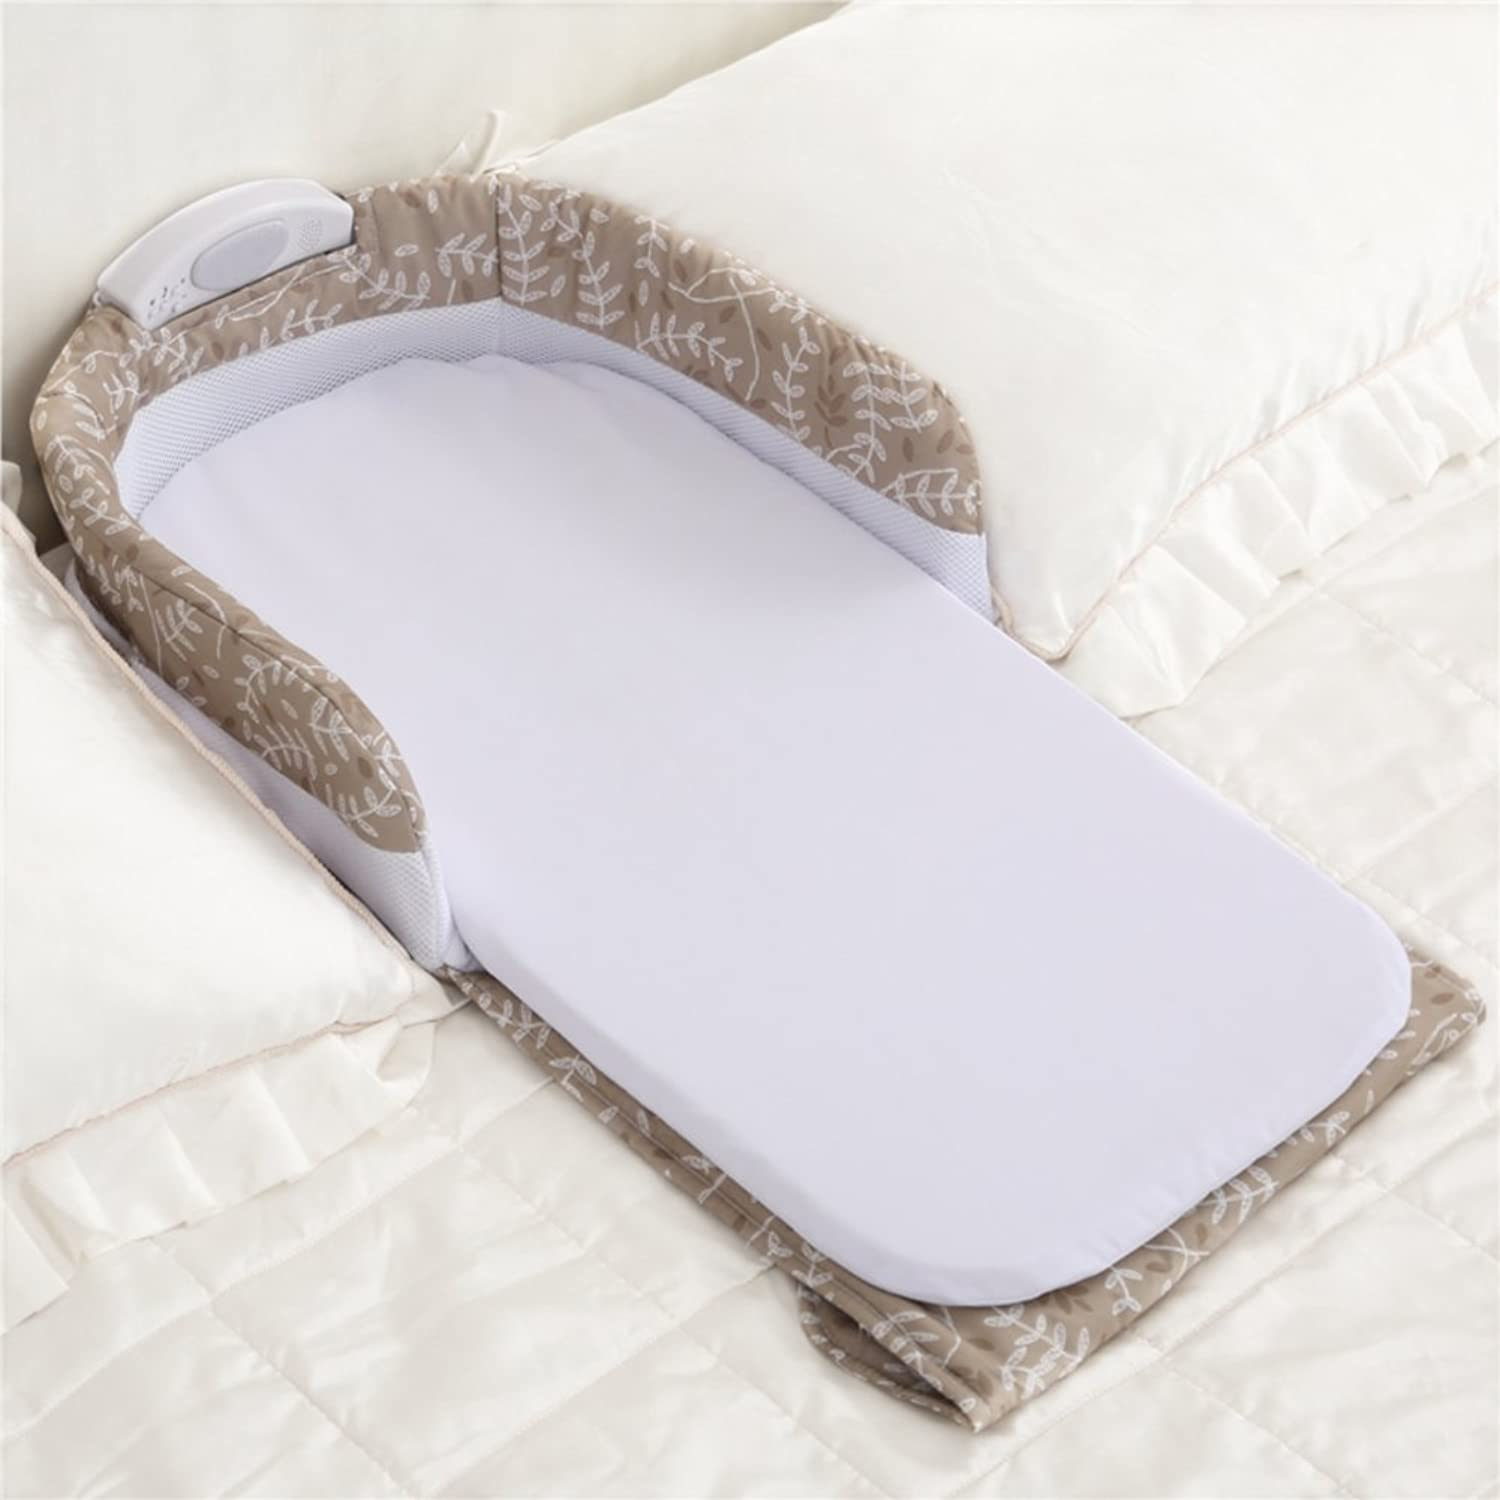 Aik@ Portable Foldable Cribs Co-sleeping,Cotton Travel bed Hypoallergenic Breathable Soft Suitable For 0-1 year Baby-B